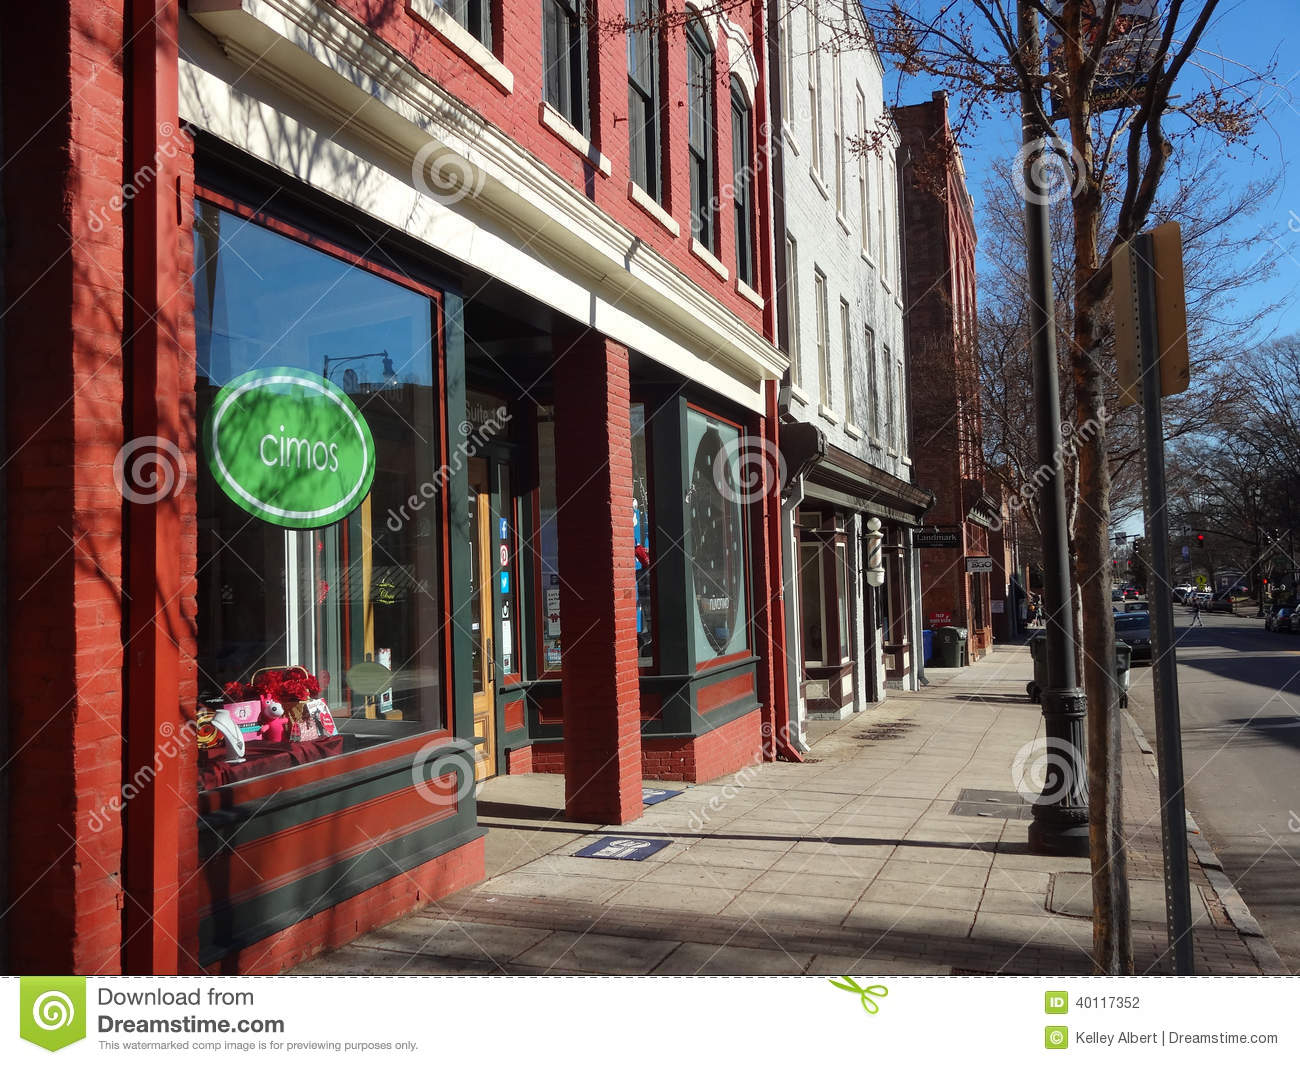 Best Raleigh Shopping: See reviews and photos of shops, malls & outlets in Raleigh, North Carolina on TripAdvisor.